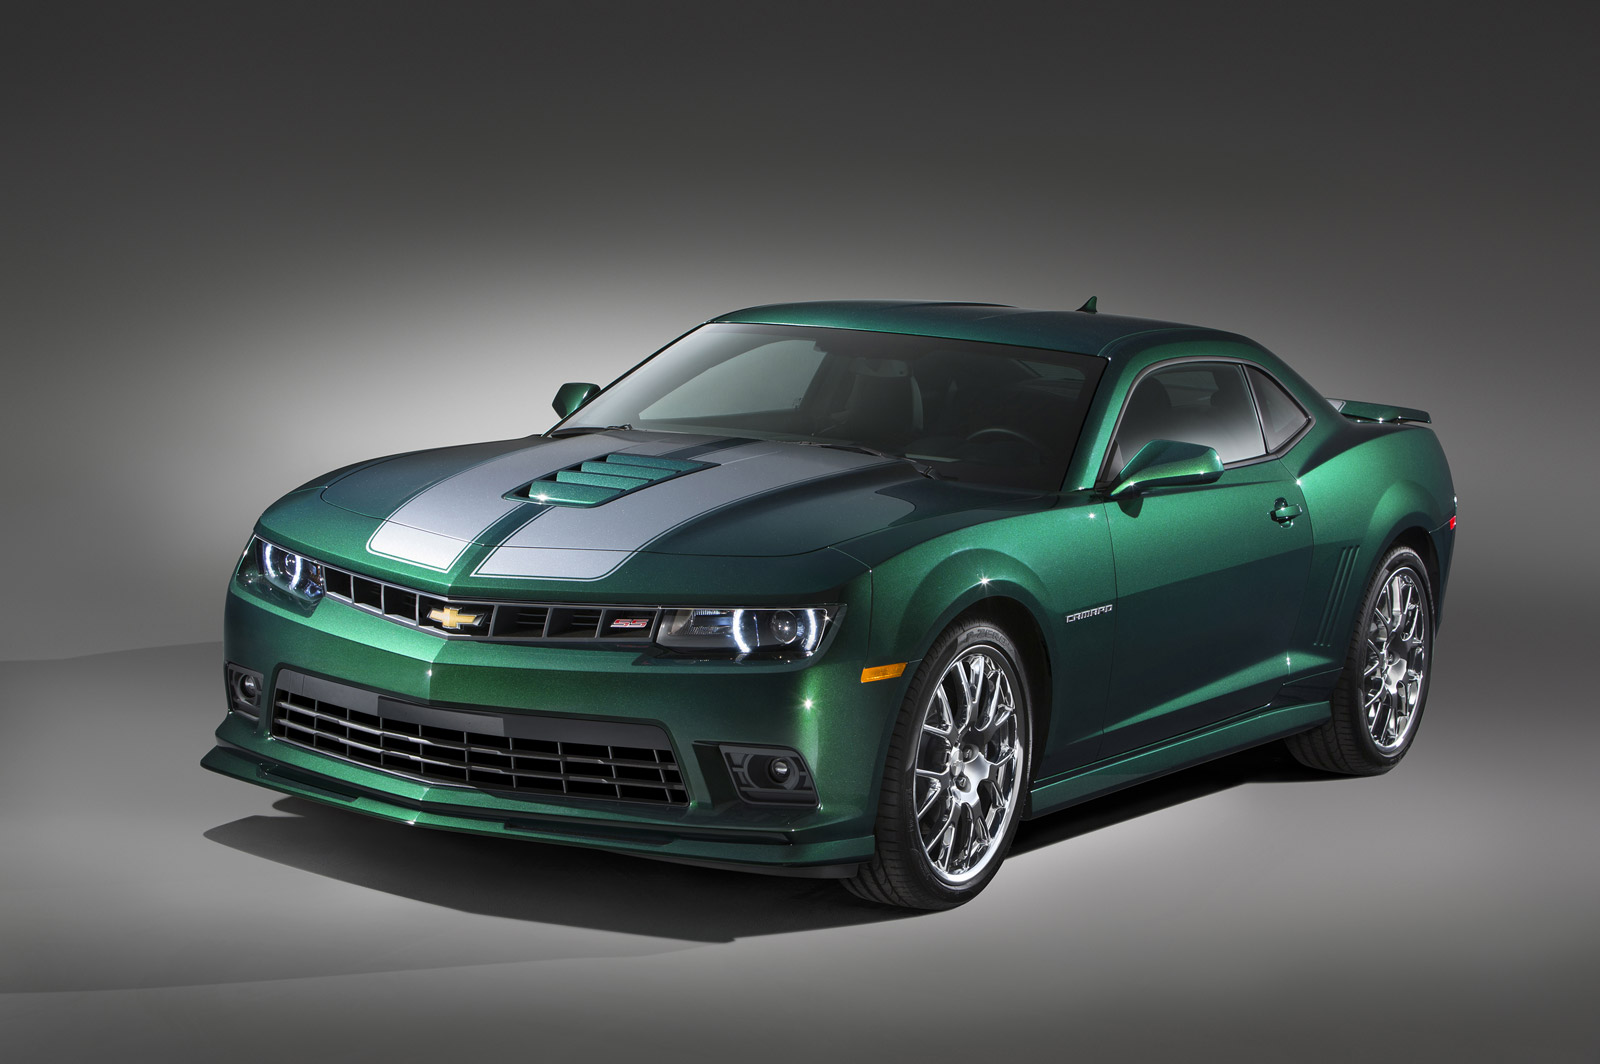 Chevy picks green flash name for latest camaro special edition publicscrutiny Gallery